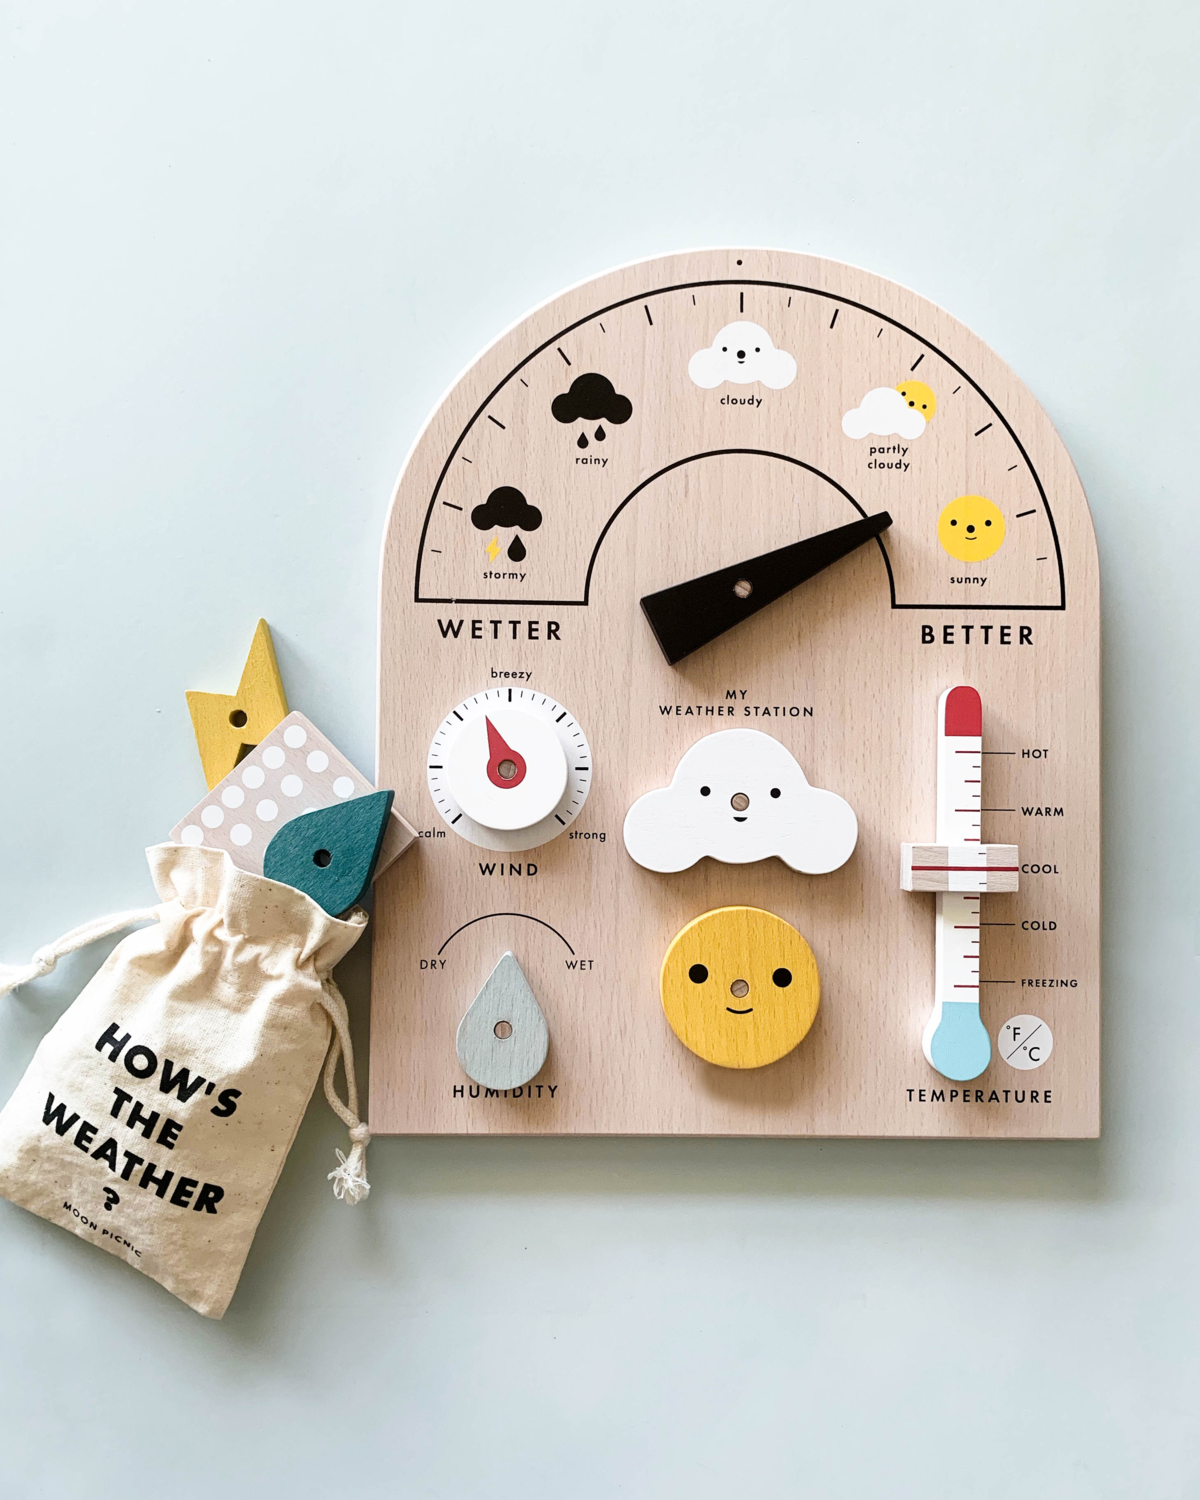 Let's learn about weather! Move the weather meter, turn the dials, slide the thermometer! This fun & educational interactive toy has 4 movable parts and 5 weather symbols to display so little meteorologists can report and forecast the weather. Dimensions: 11.6 x 9.4″ Includes: 1 base, 4 movable dials & slider,